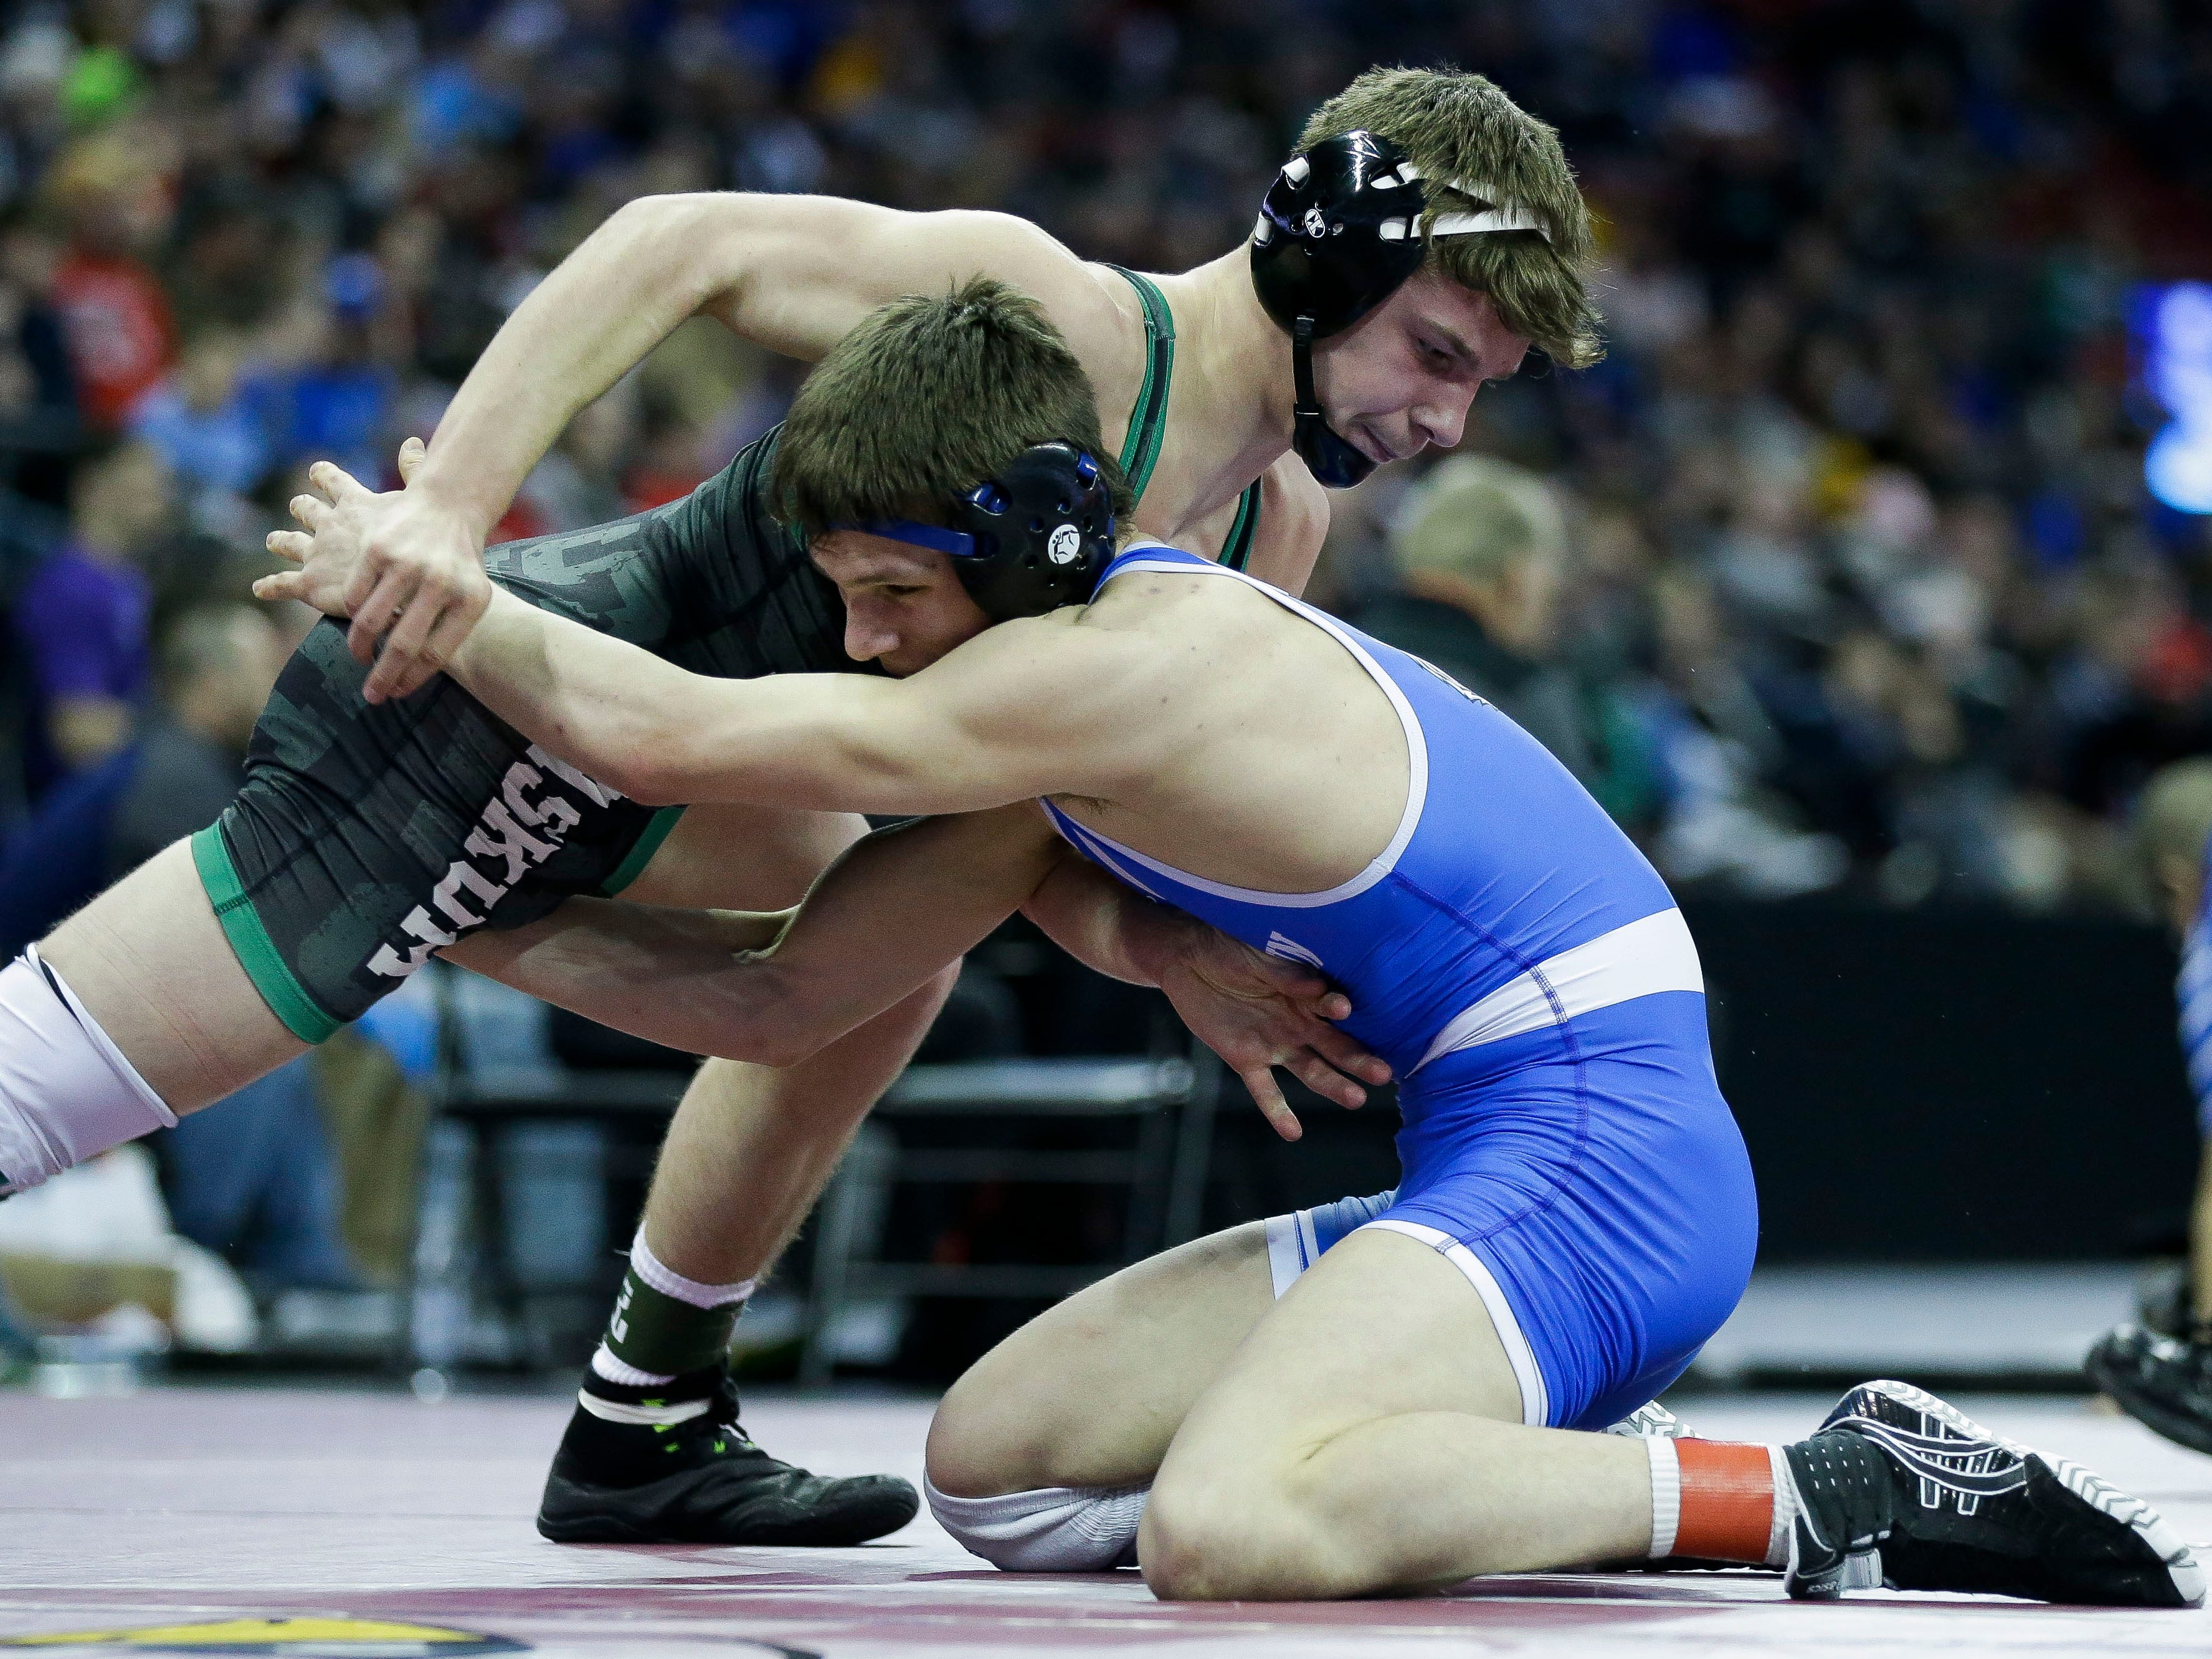 Wrightstown's Ben Durocher wrestles against Kewaskum's Braden Maertz in a Division 2 145-pound preliminary match during the WIAA state wrestling tournament on Thursday, February 21, 2019, at the Kohl Center in Madison, Wis.